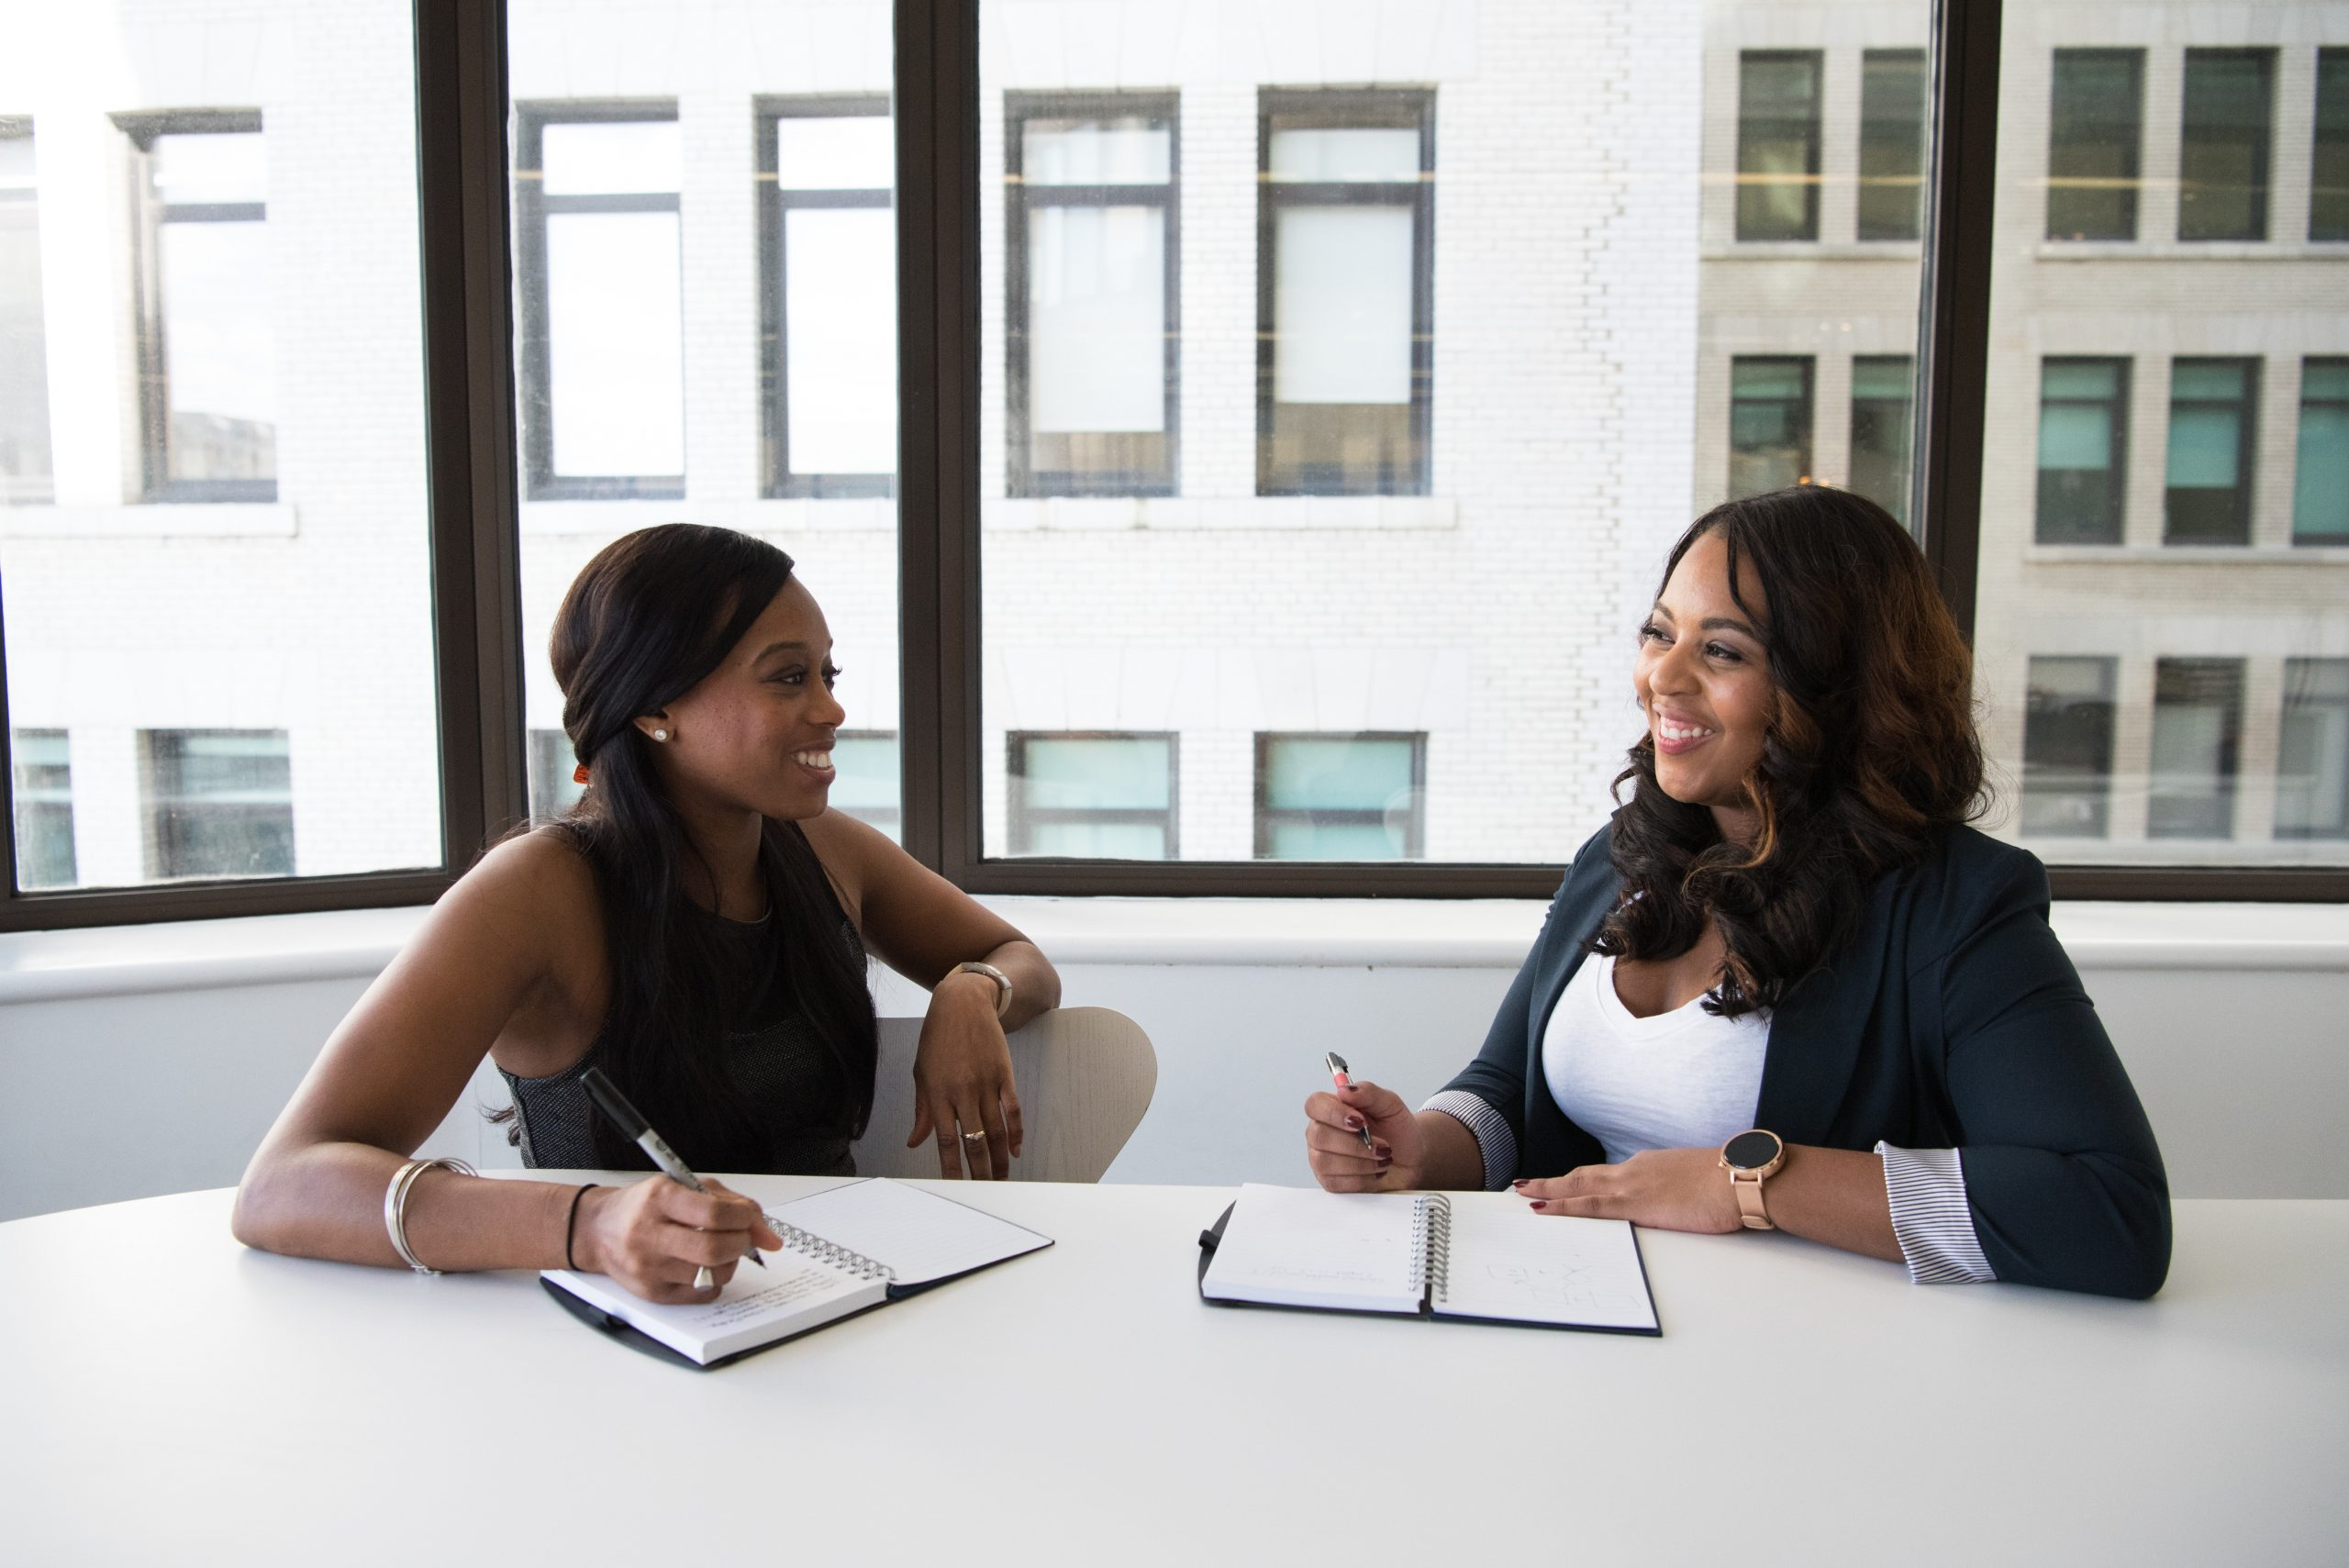 Two women meeting and taking notes